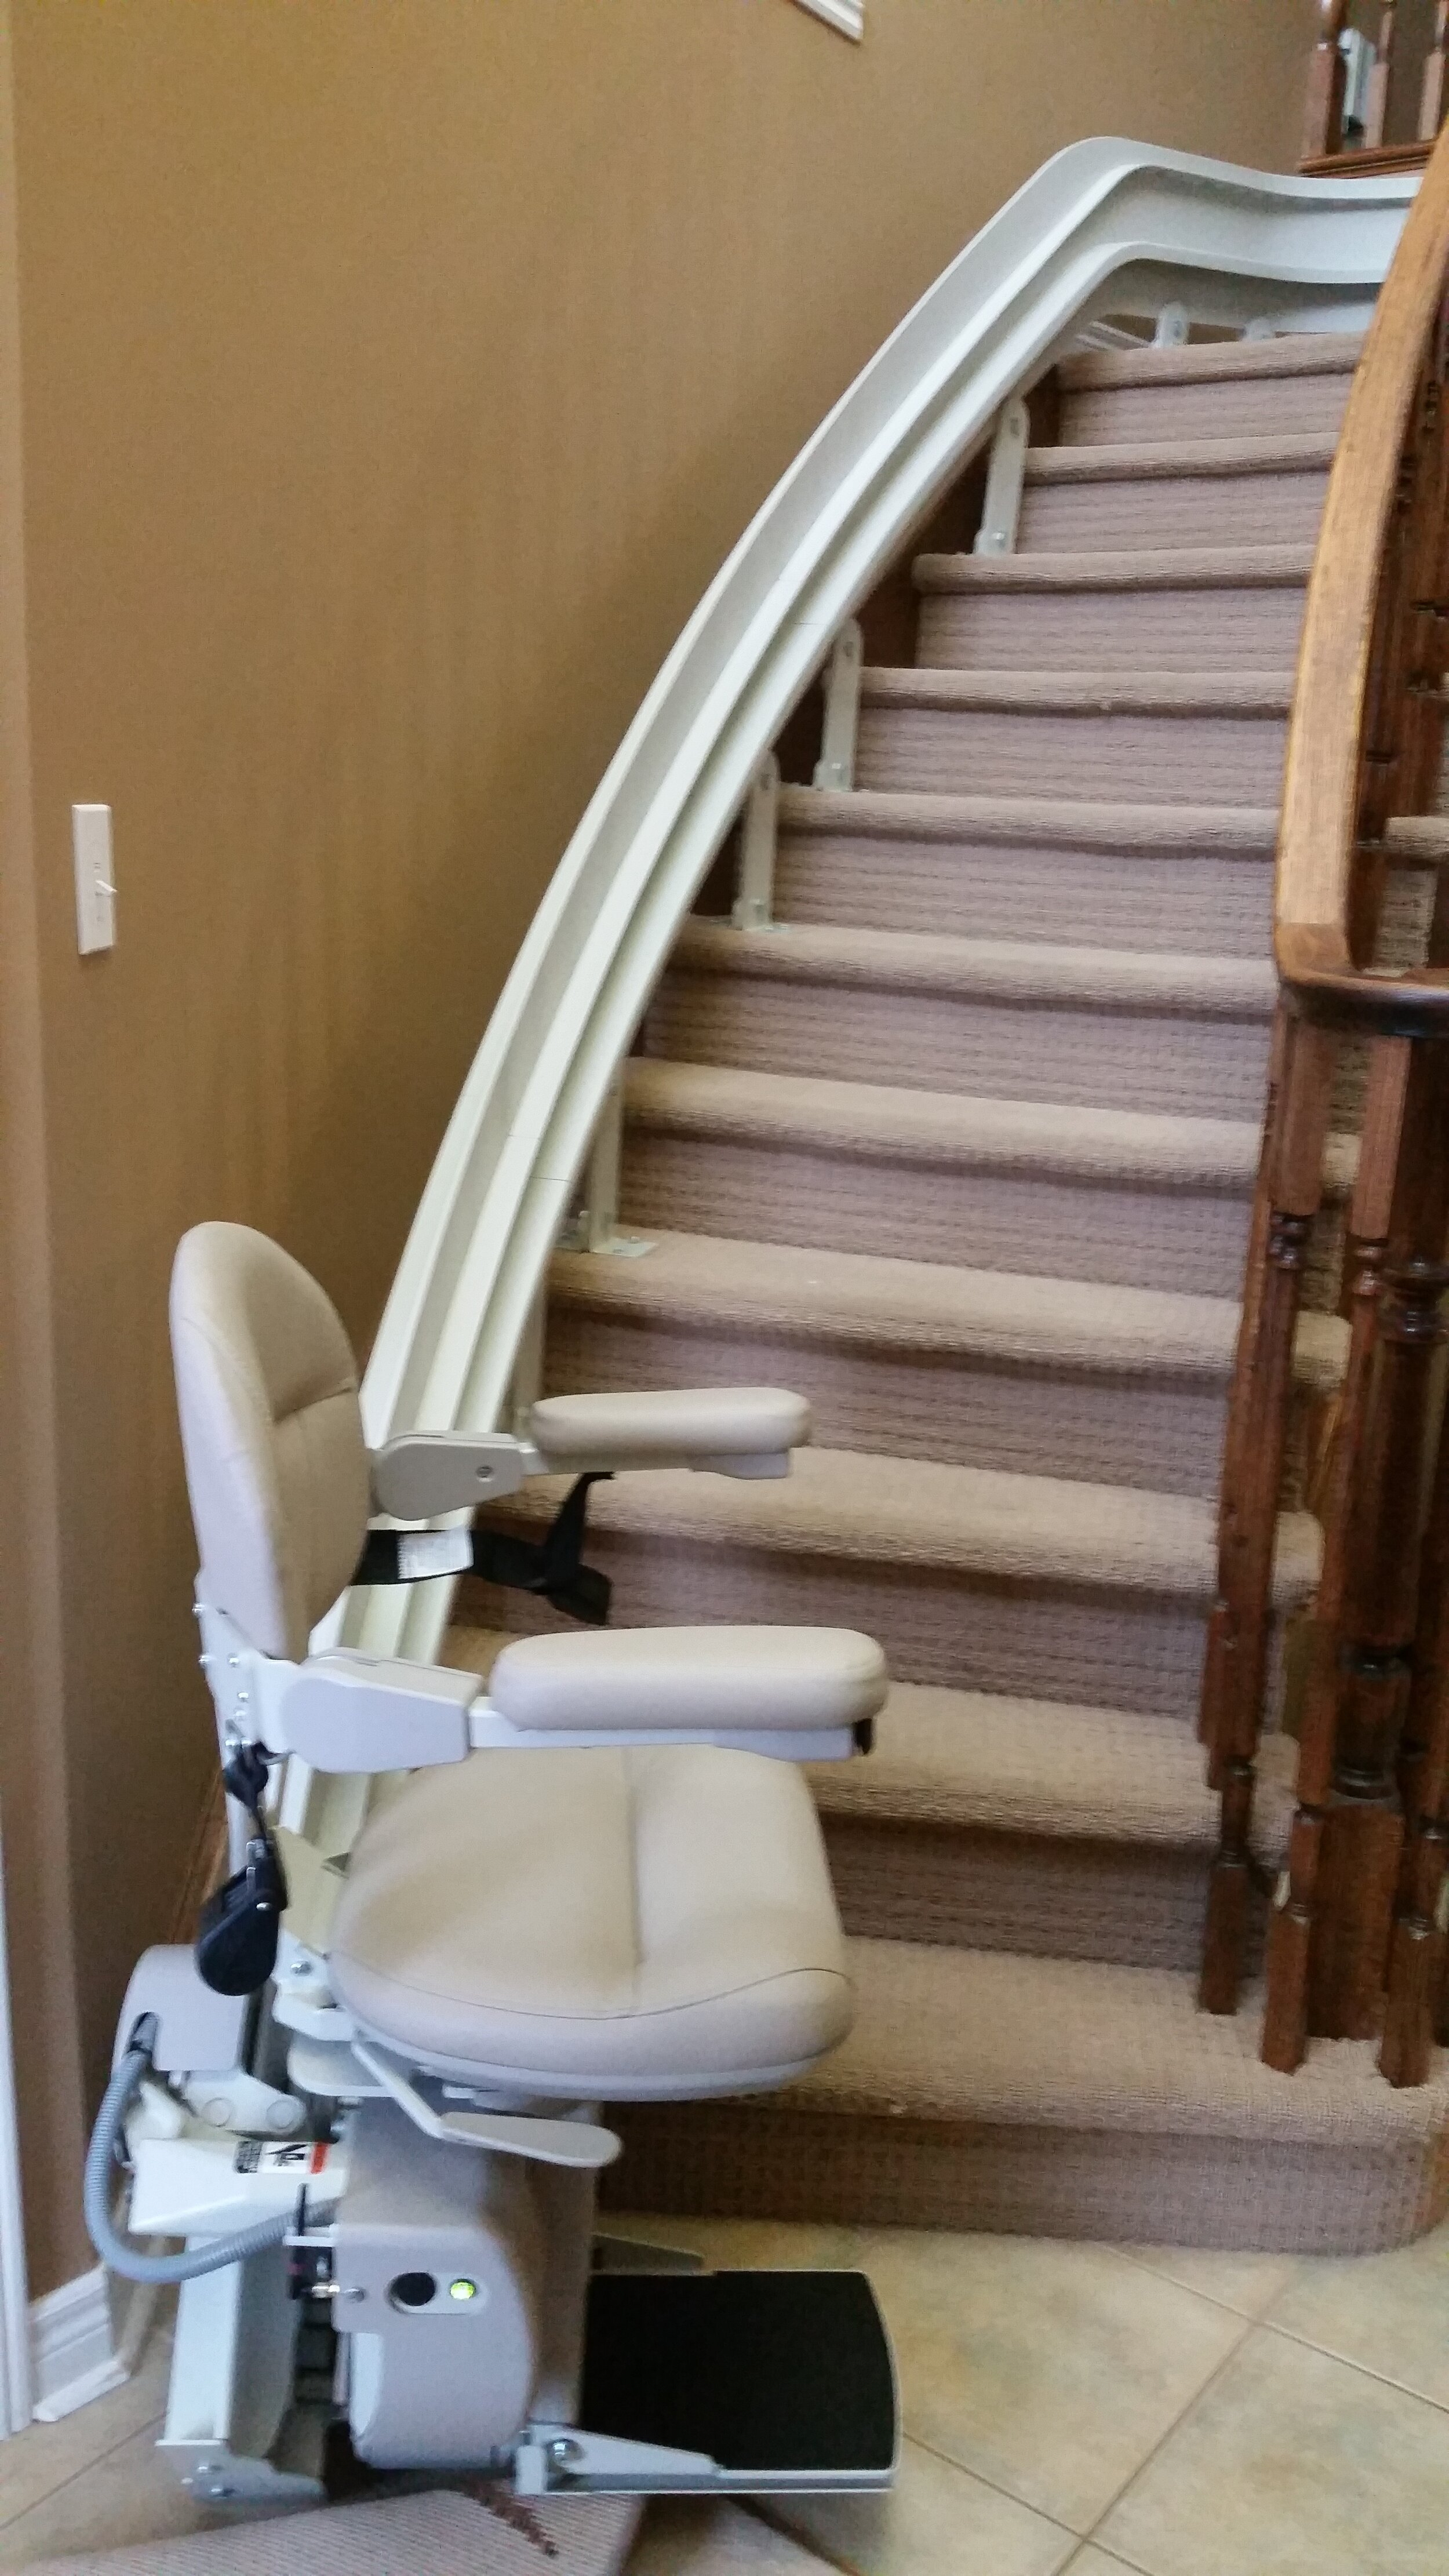 Remain in Your Own Home with a Stair Lift - Safely Ride from Level to level in your own home.